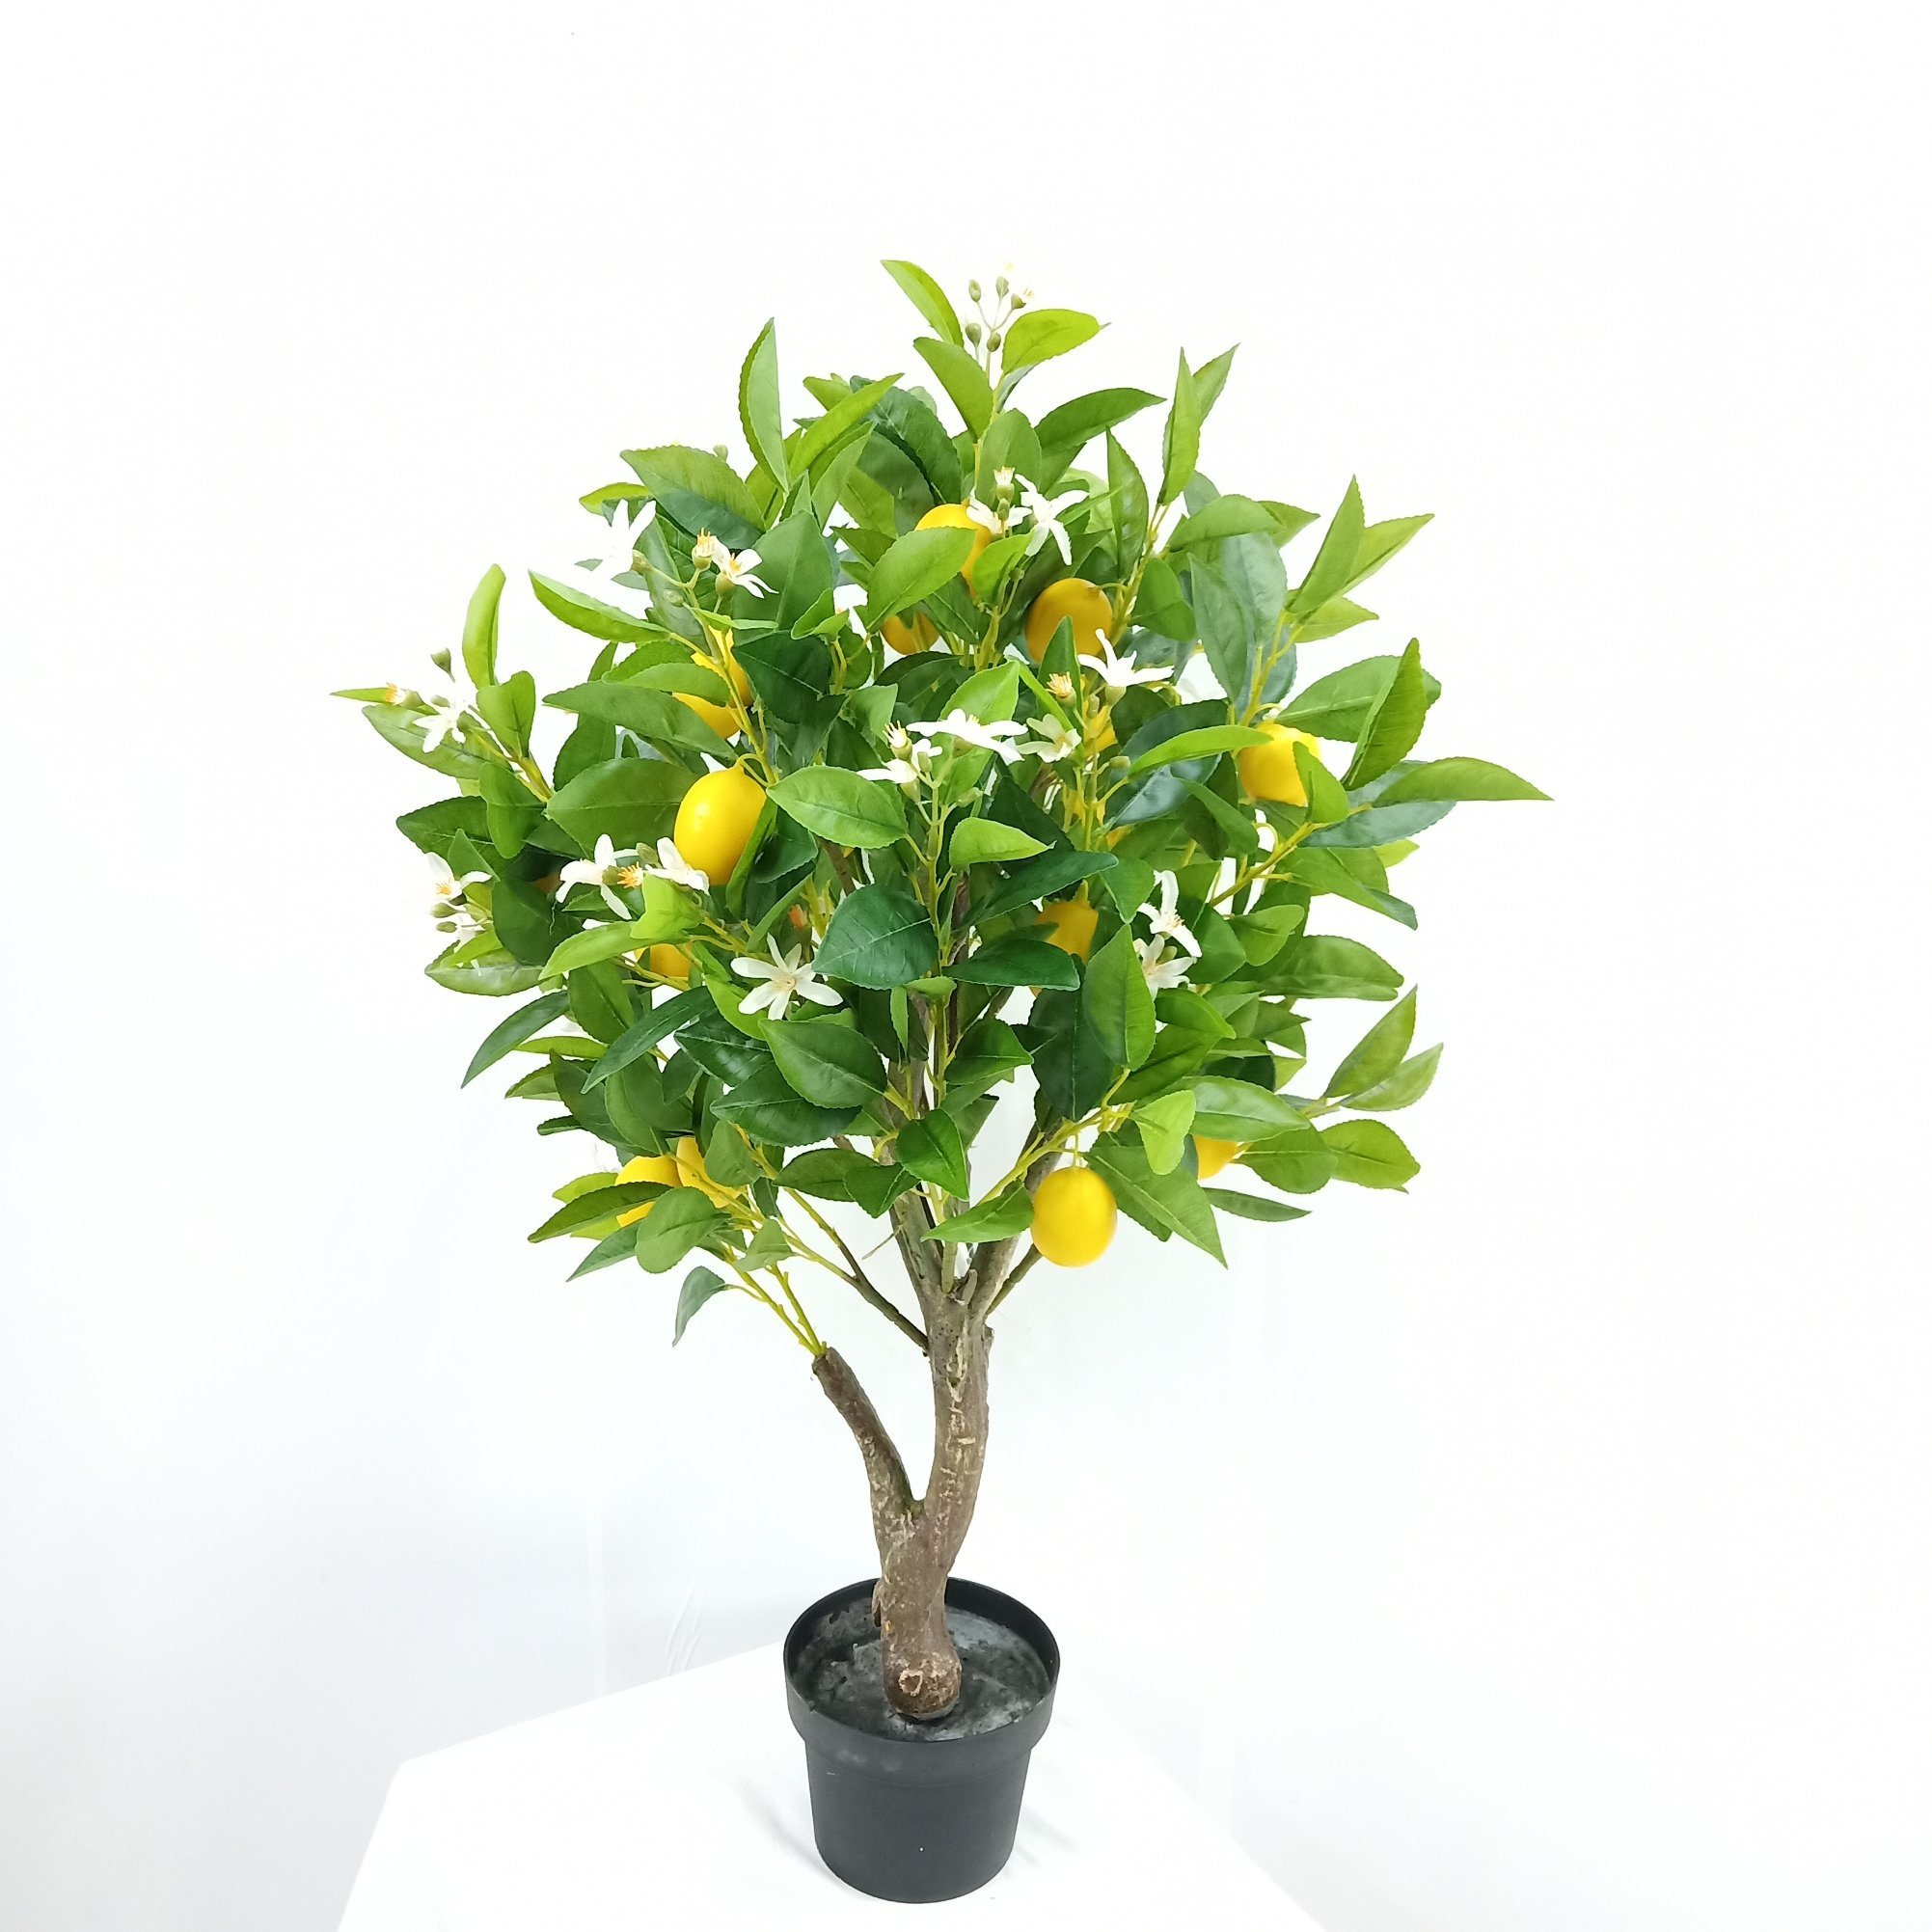 China Artificial Decorative Plants Plastic Potted Bonsai Lemon Tree China Artificial Lemon Tree And Lemon Tree Price